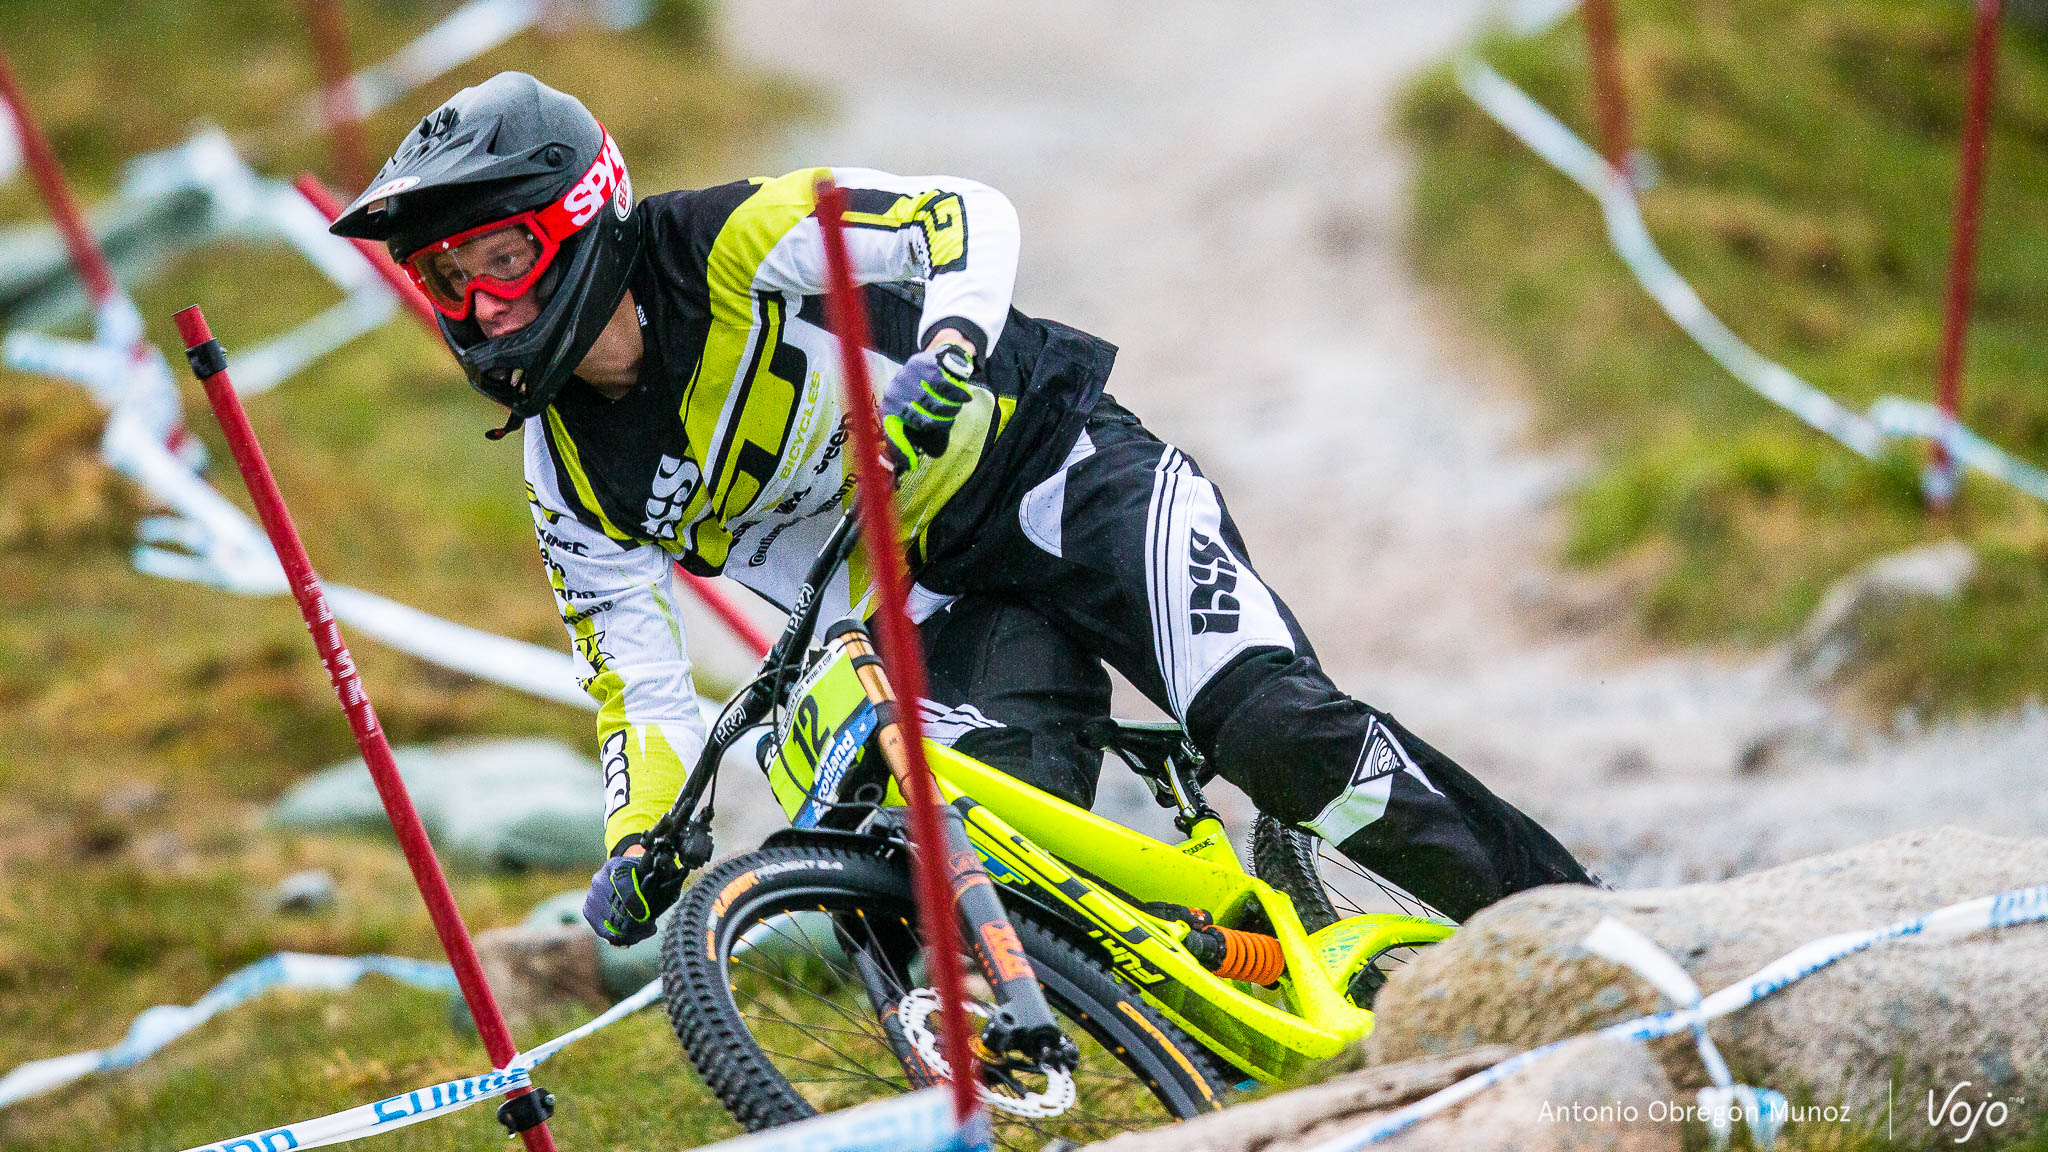 Fort_William_UCI_World_Cup_DH_2015_(trainning_GroupeB)_(MartinMaes)_Copyright_Antonio_Obregon_VojoMag-3